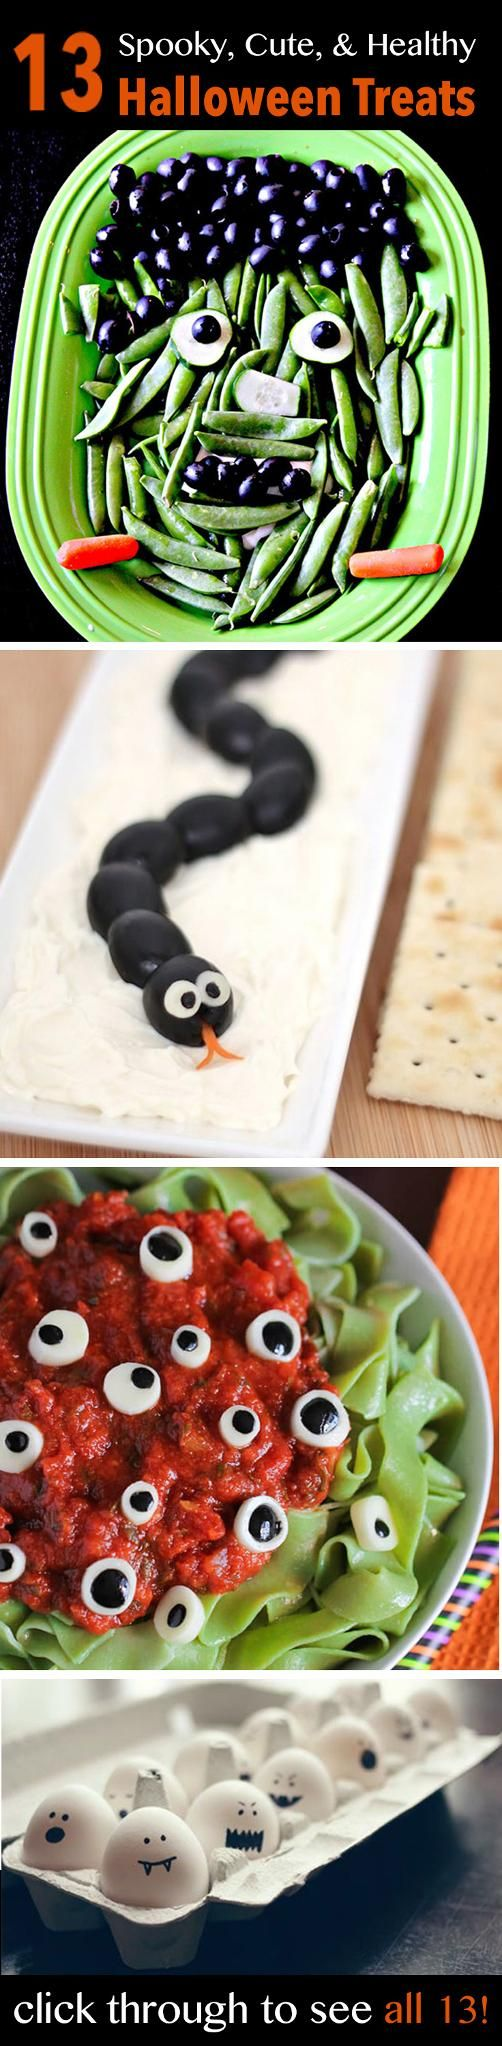 13 Healthy Halloween Treats -- Skip the candy and get into the Halloween spirit with these spooky, cute, and healthy snacks instead! // recipes // healthy recipes // healthy eating // snacks // treats // Halloween recipes // healthy eating // holiday recipes // beachbody // beachbody blog